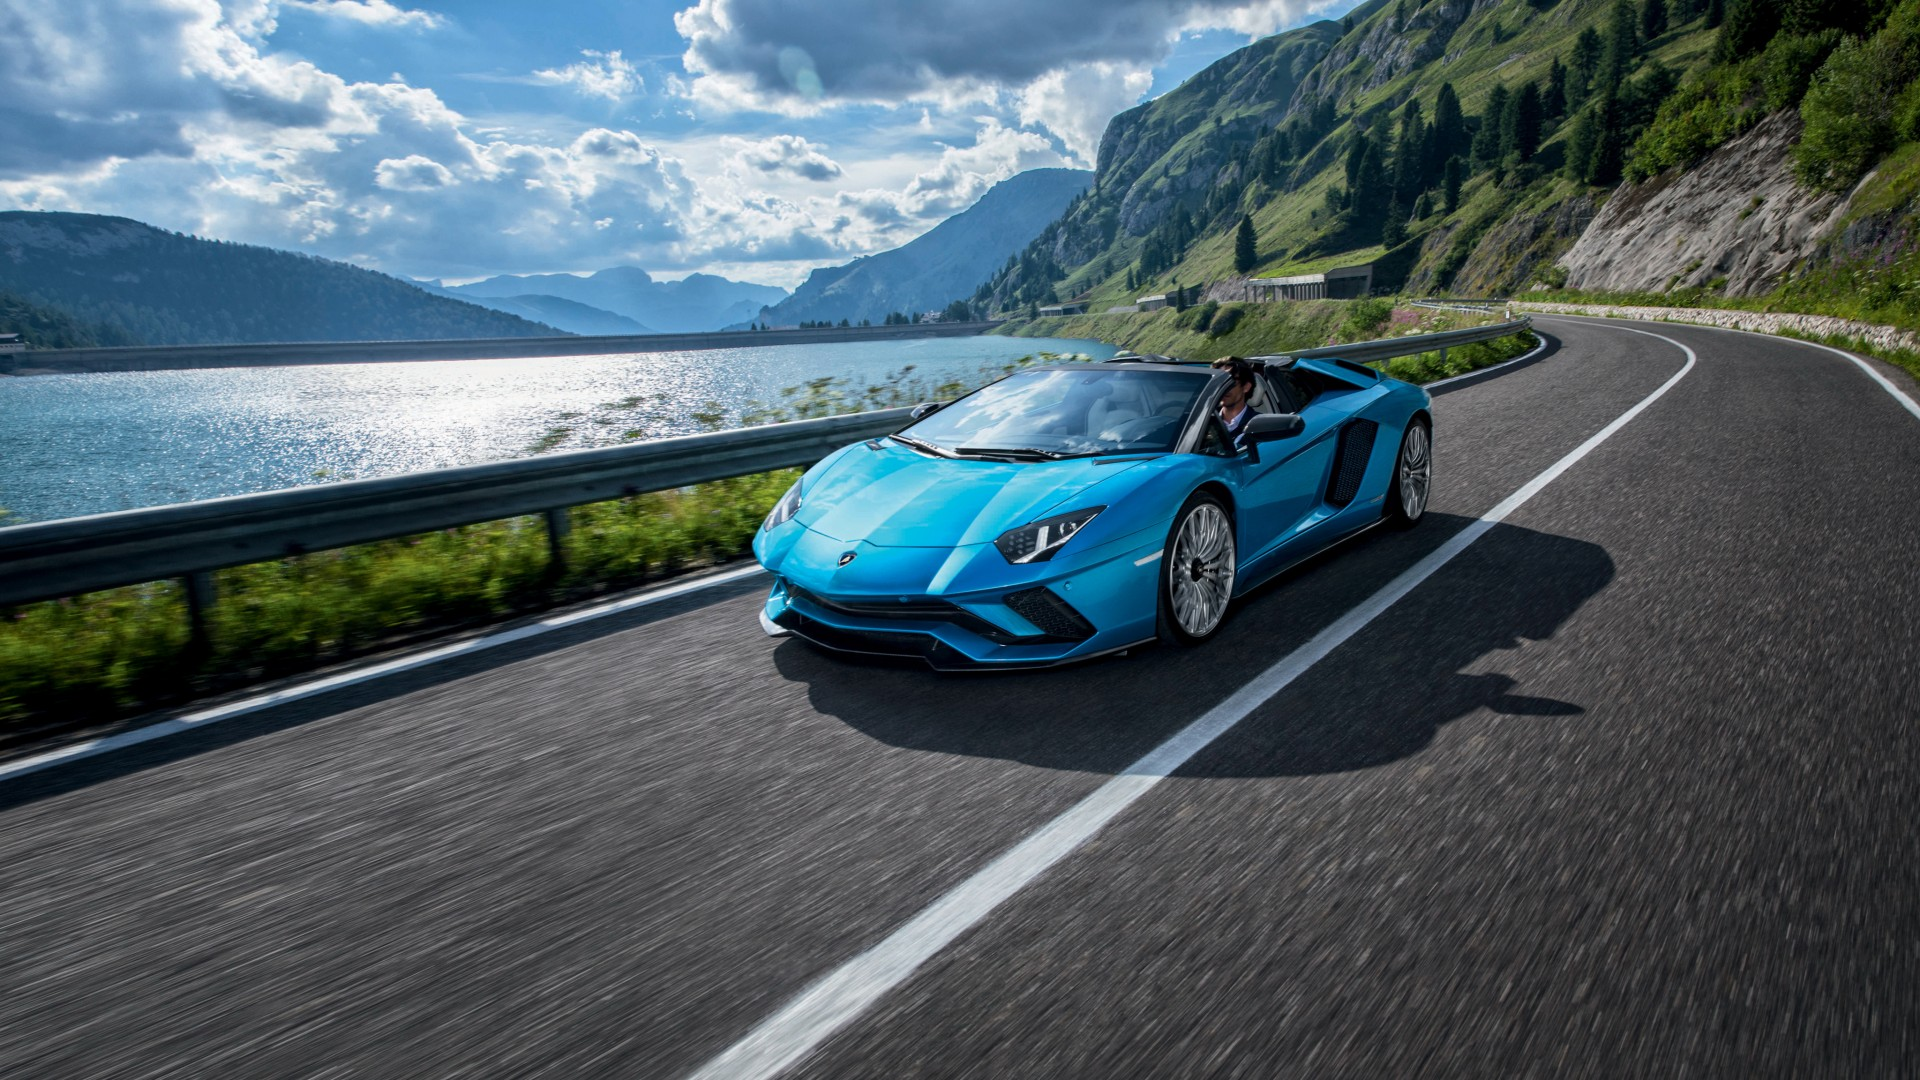 Mercedes Benz Newport Beach >> Lamborghini Aventador S Roadster 4K 2018 Wallpaper | HD ...